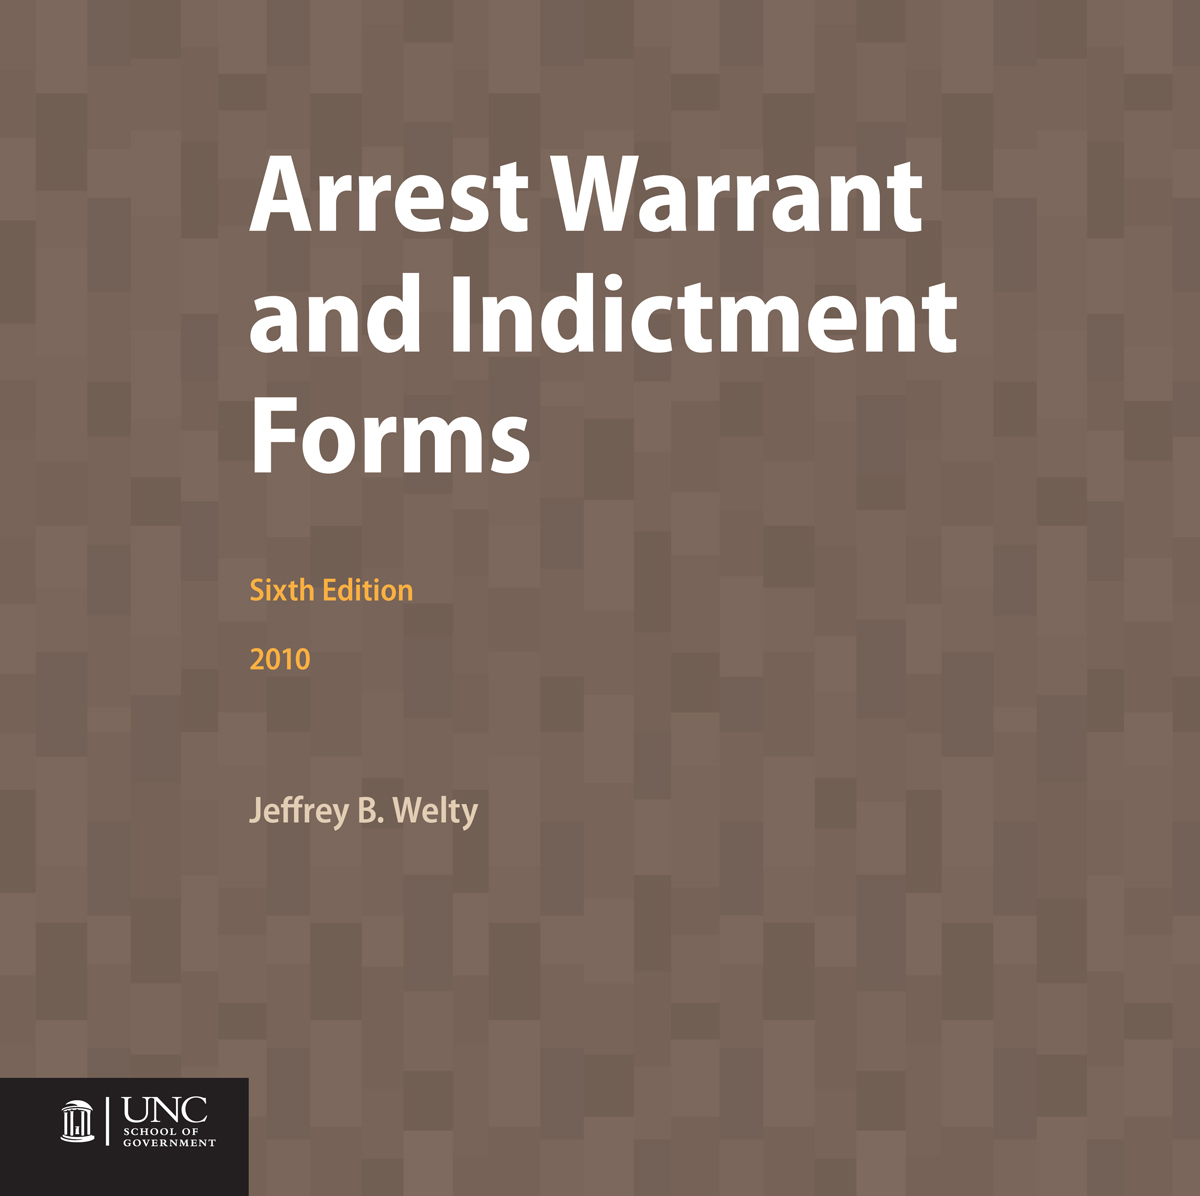 Cover image for Arrest Warrant and Indictment Forms, Sixth Edition, 2010 (Hard Copy Format)